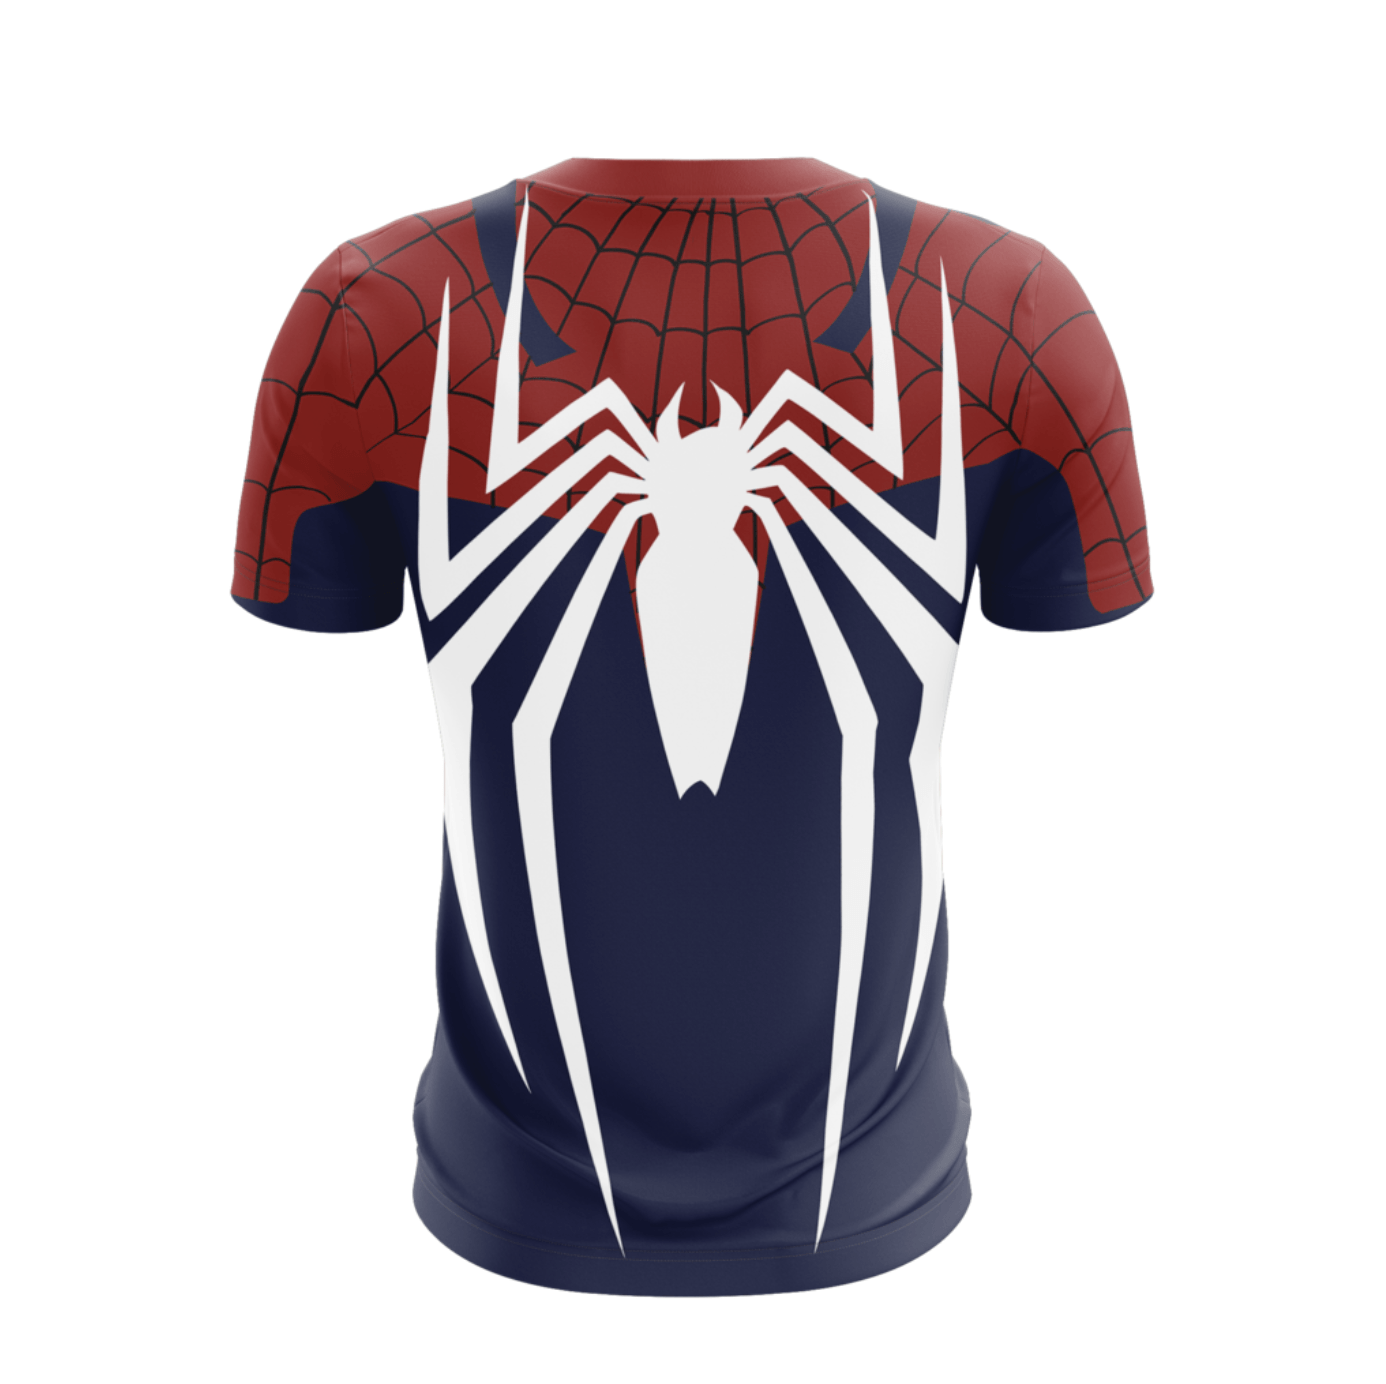 Spiderman T-Shirt - Spider Man PS4 T-Shirt